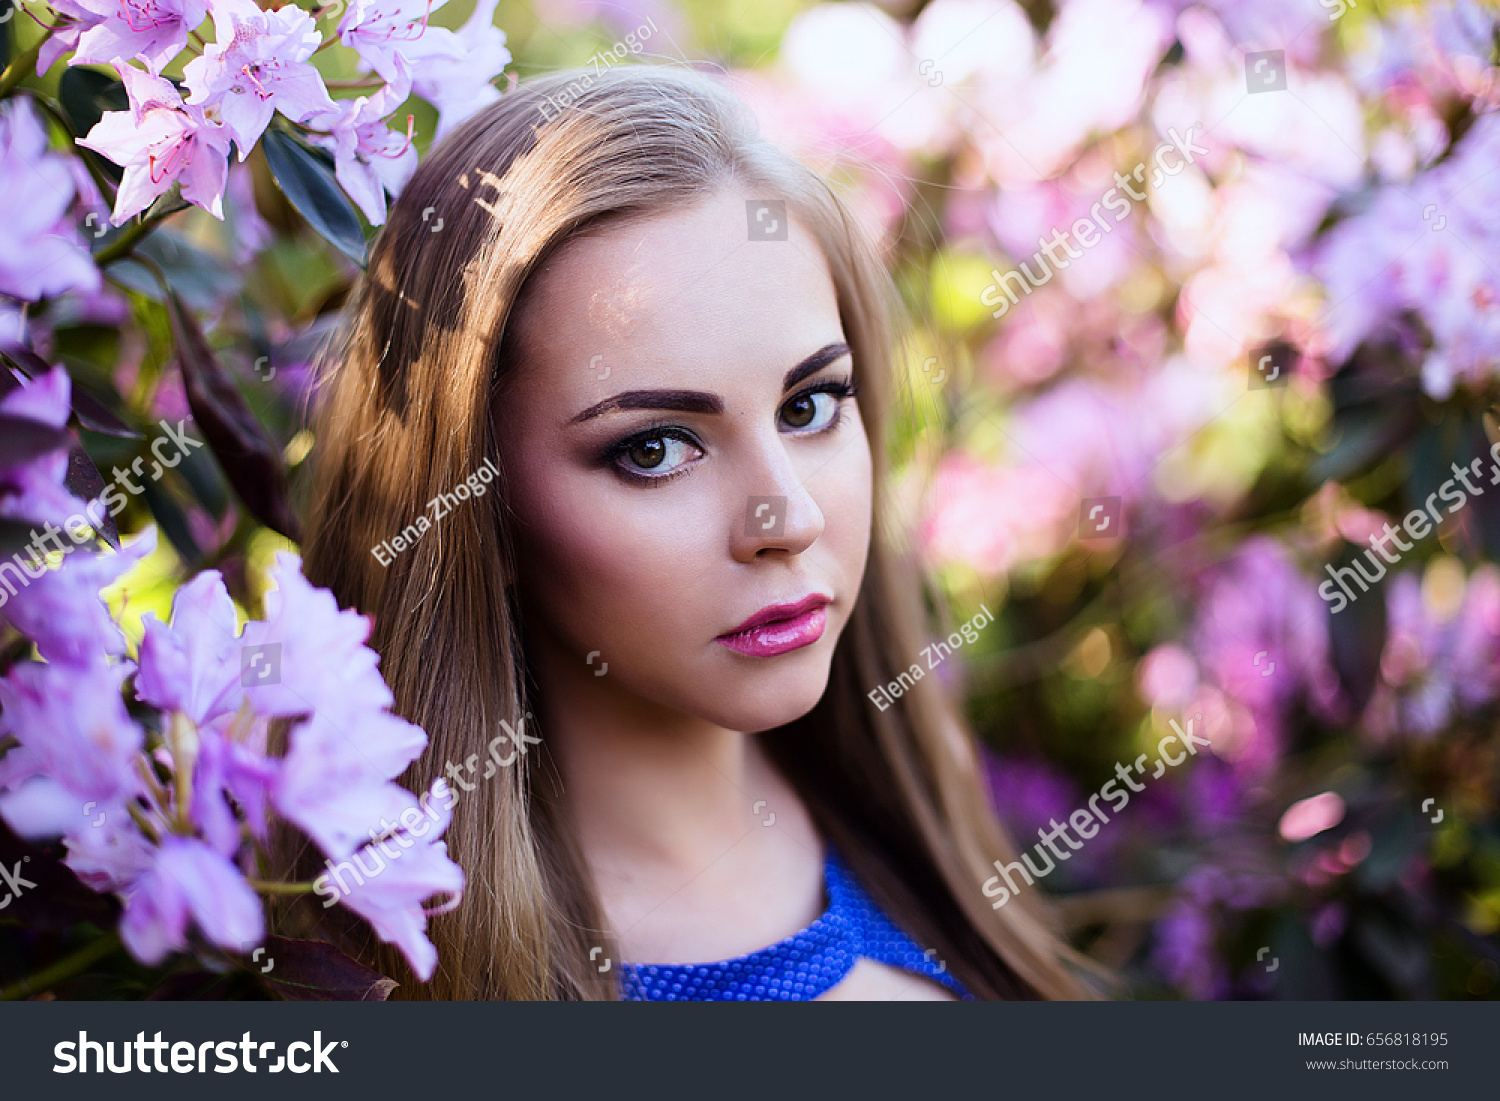 Portrait girl blue dress garden flowers stock photo 100 legal portrait of girl in blue dress in garden with flowers with beautiful hair and makeup izmirmasajfo